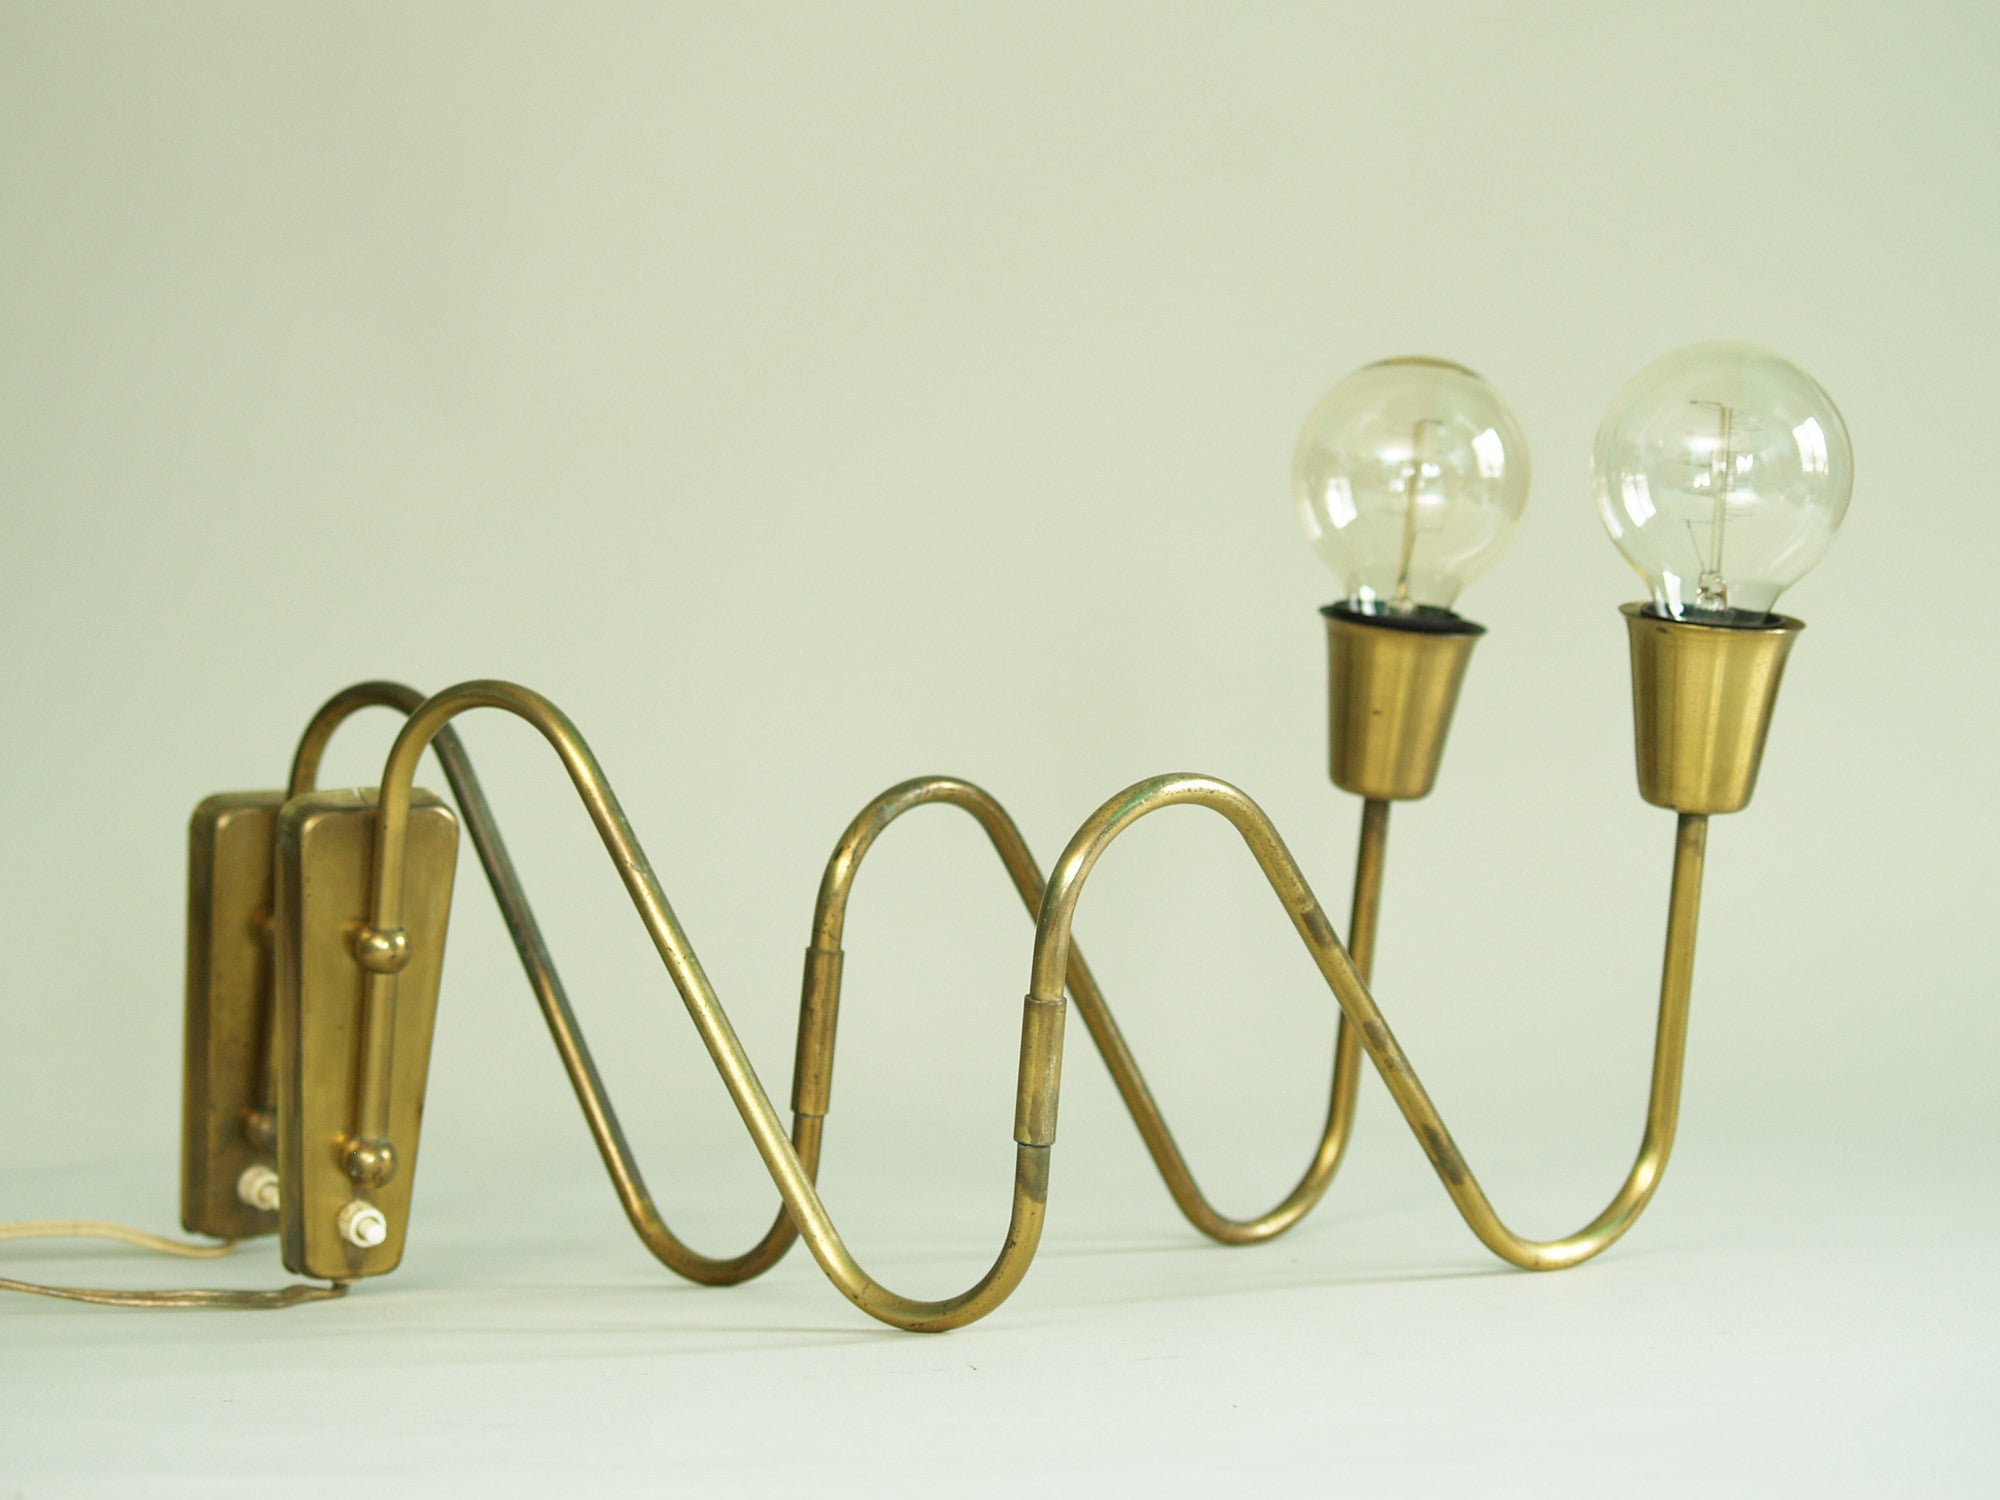 Paire d'appliques / potences de Bent Karlby pour Lyfa, Danemark (vers 1950)..Pair of swing arm wall light by Bent Karlby for Lyfa, Denmark (circa 1950)